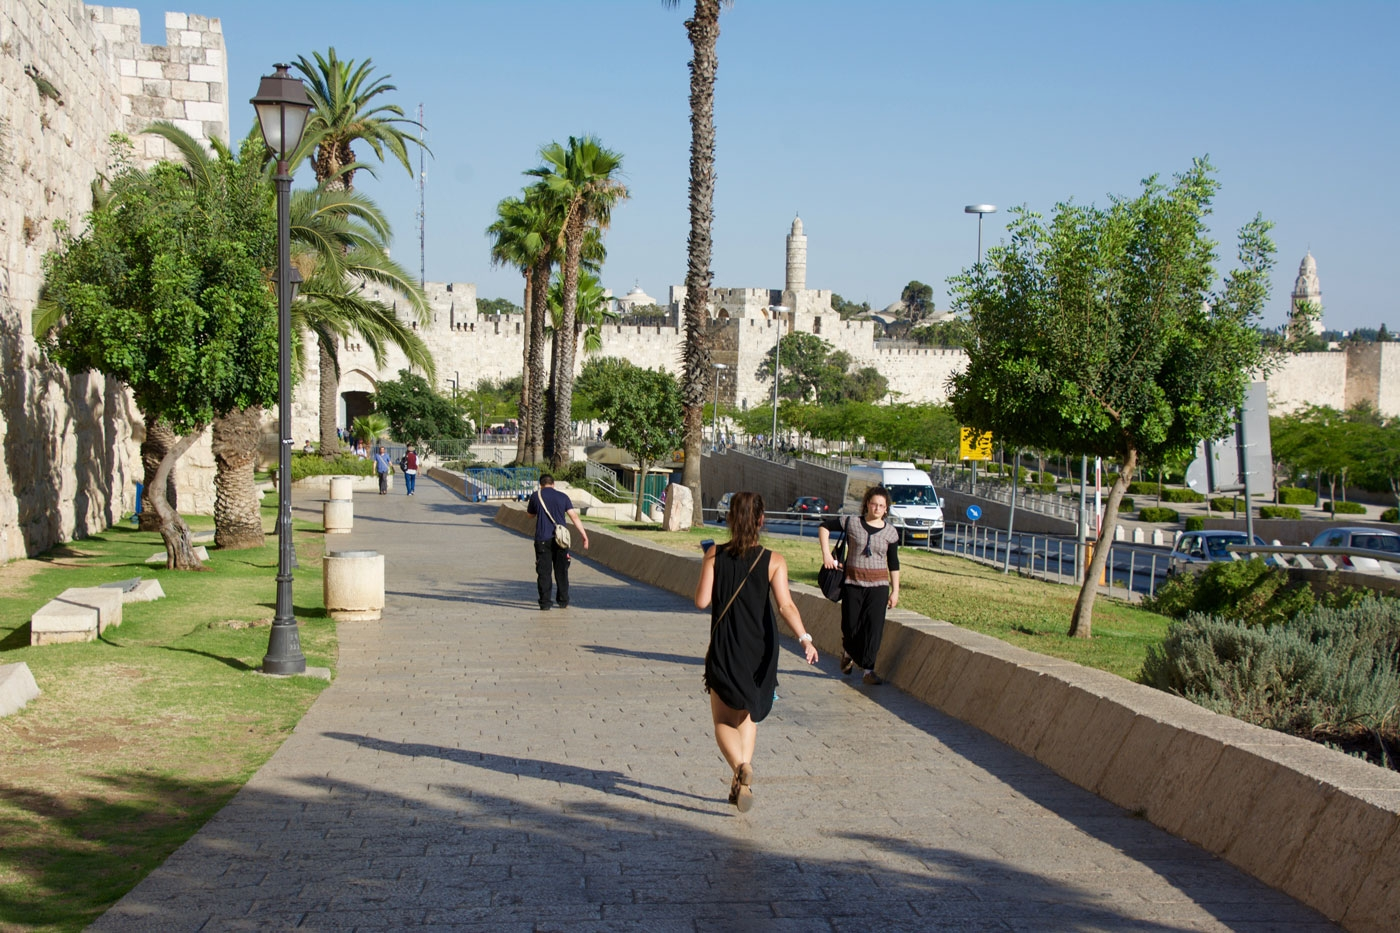 Walk to the Jaffa Gate entrance for the Old City of Jerusalem